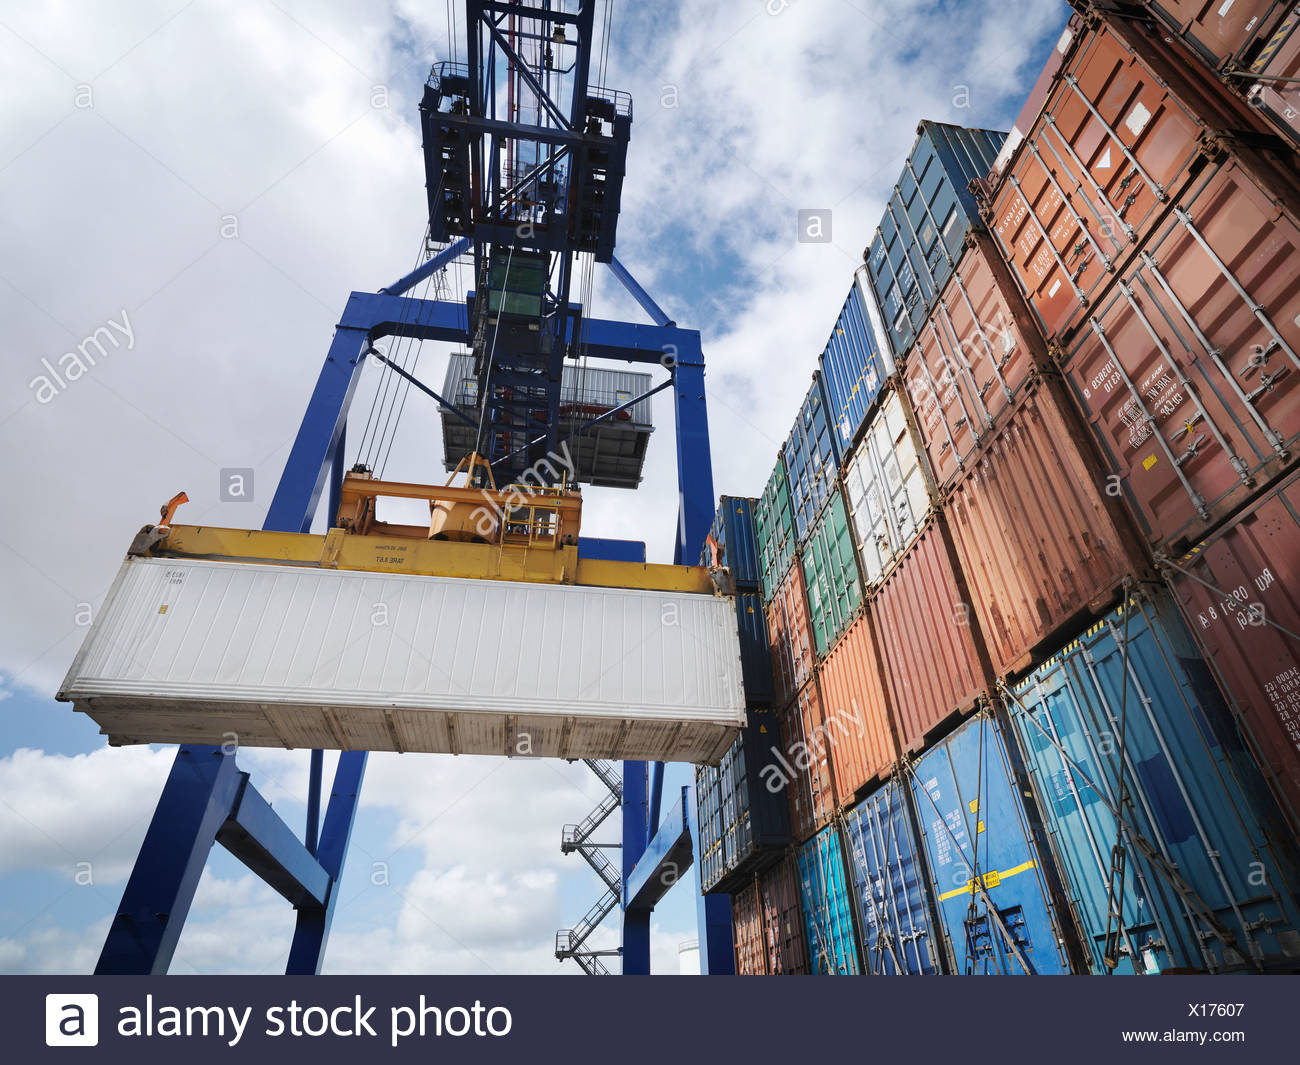 Shipping containers with gantry crane - Stock Image